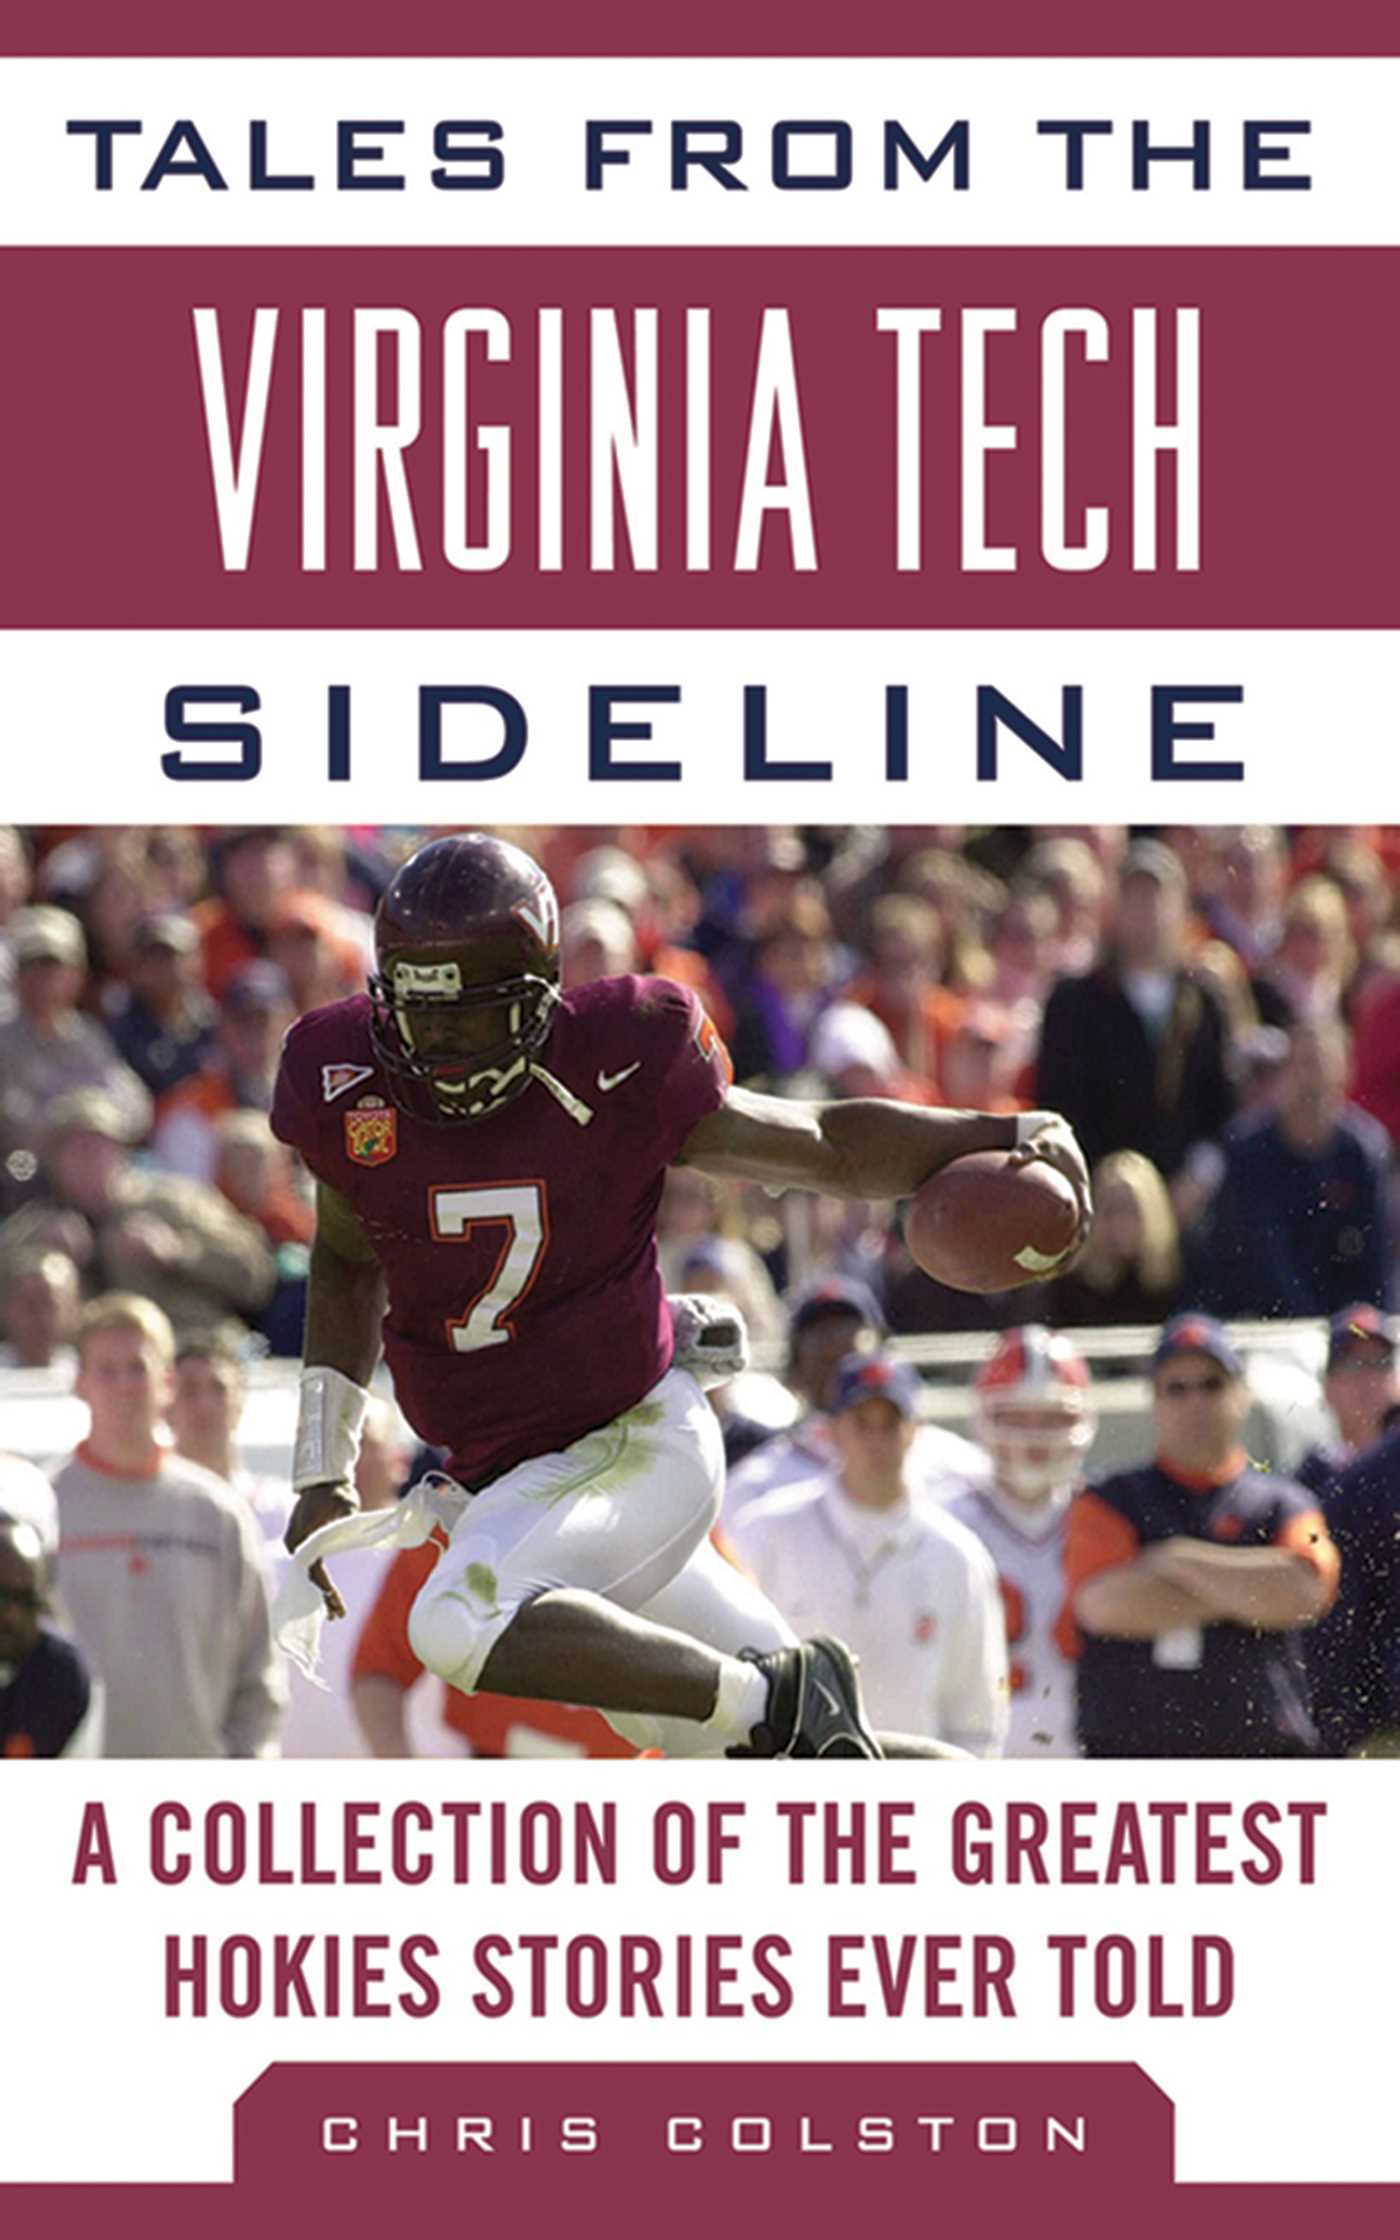 Book Cover Image (jpg): Tales from the Virginia Tech Sideline